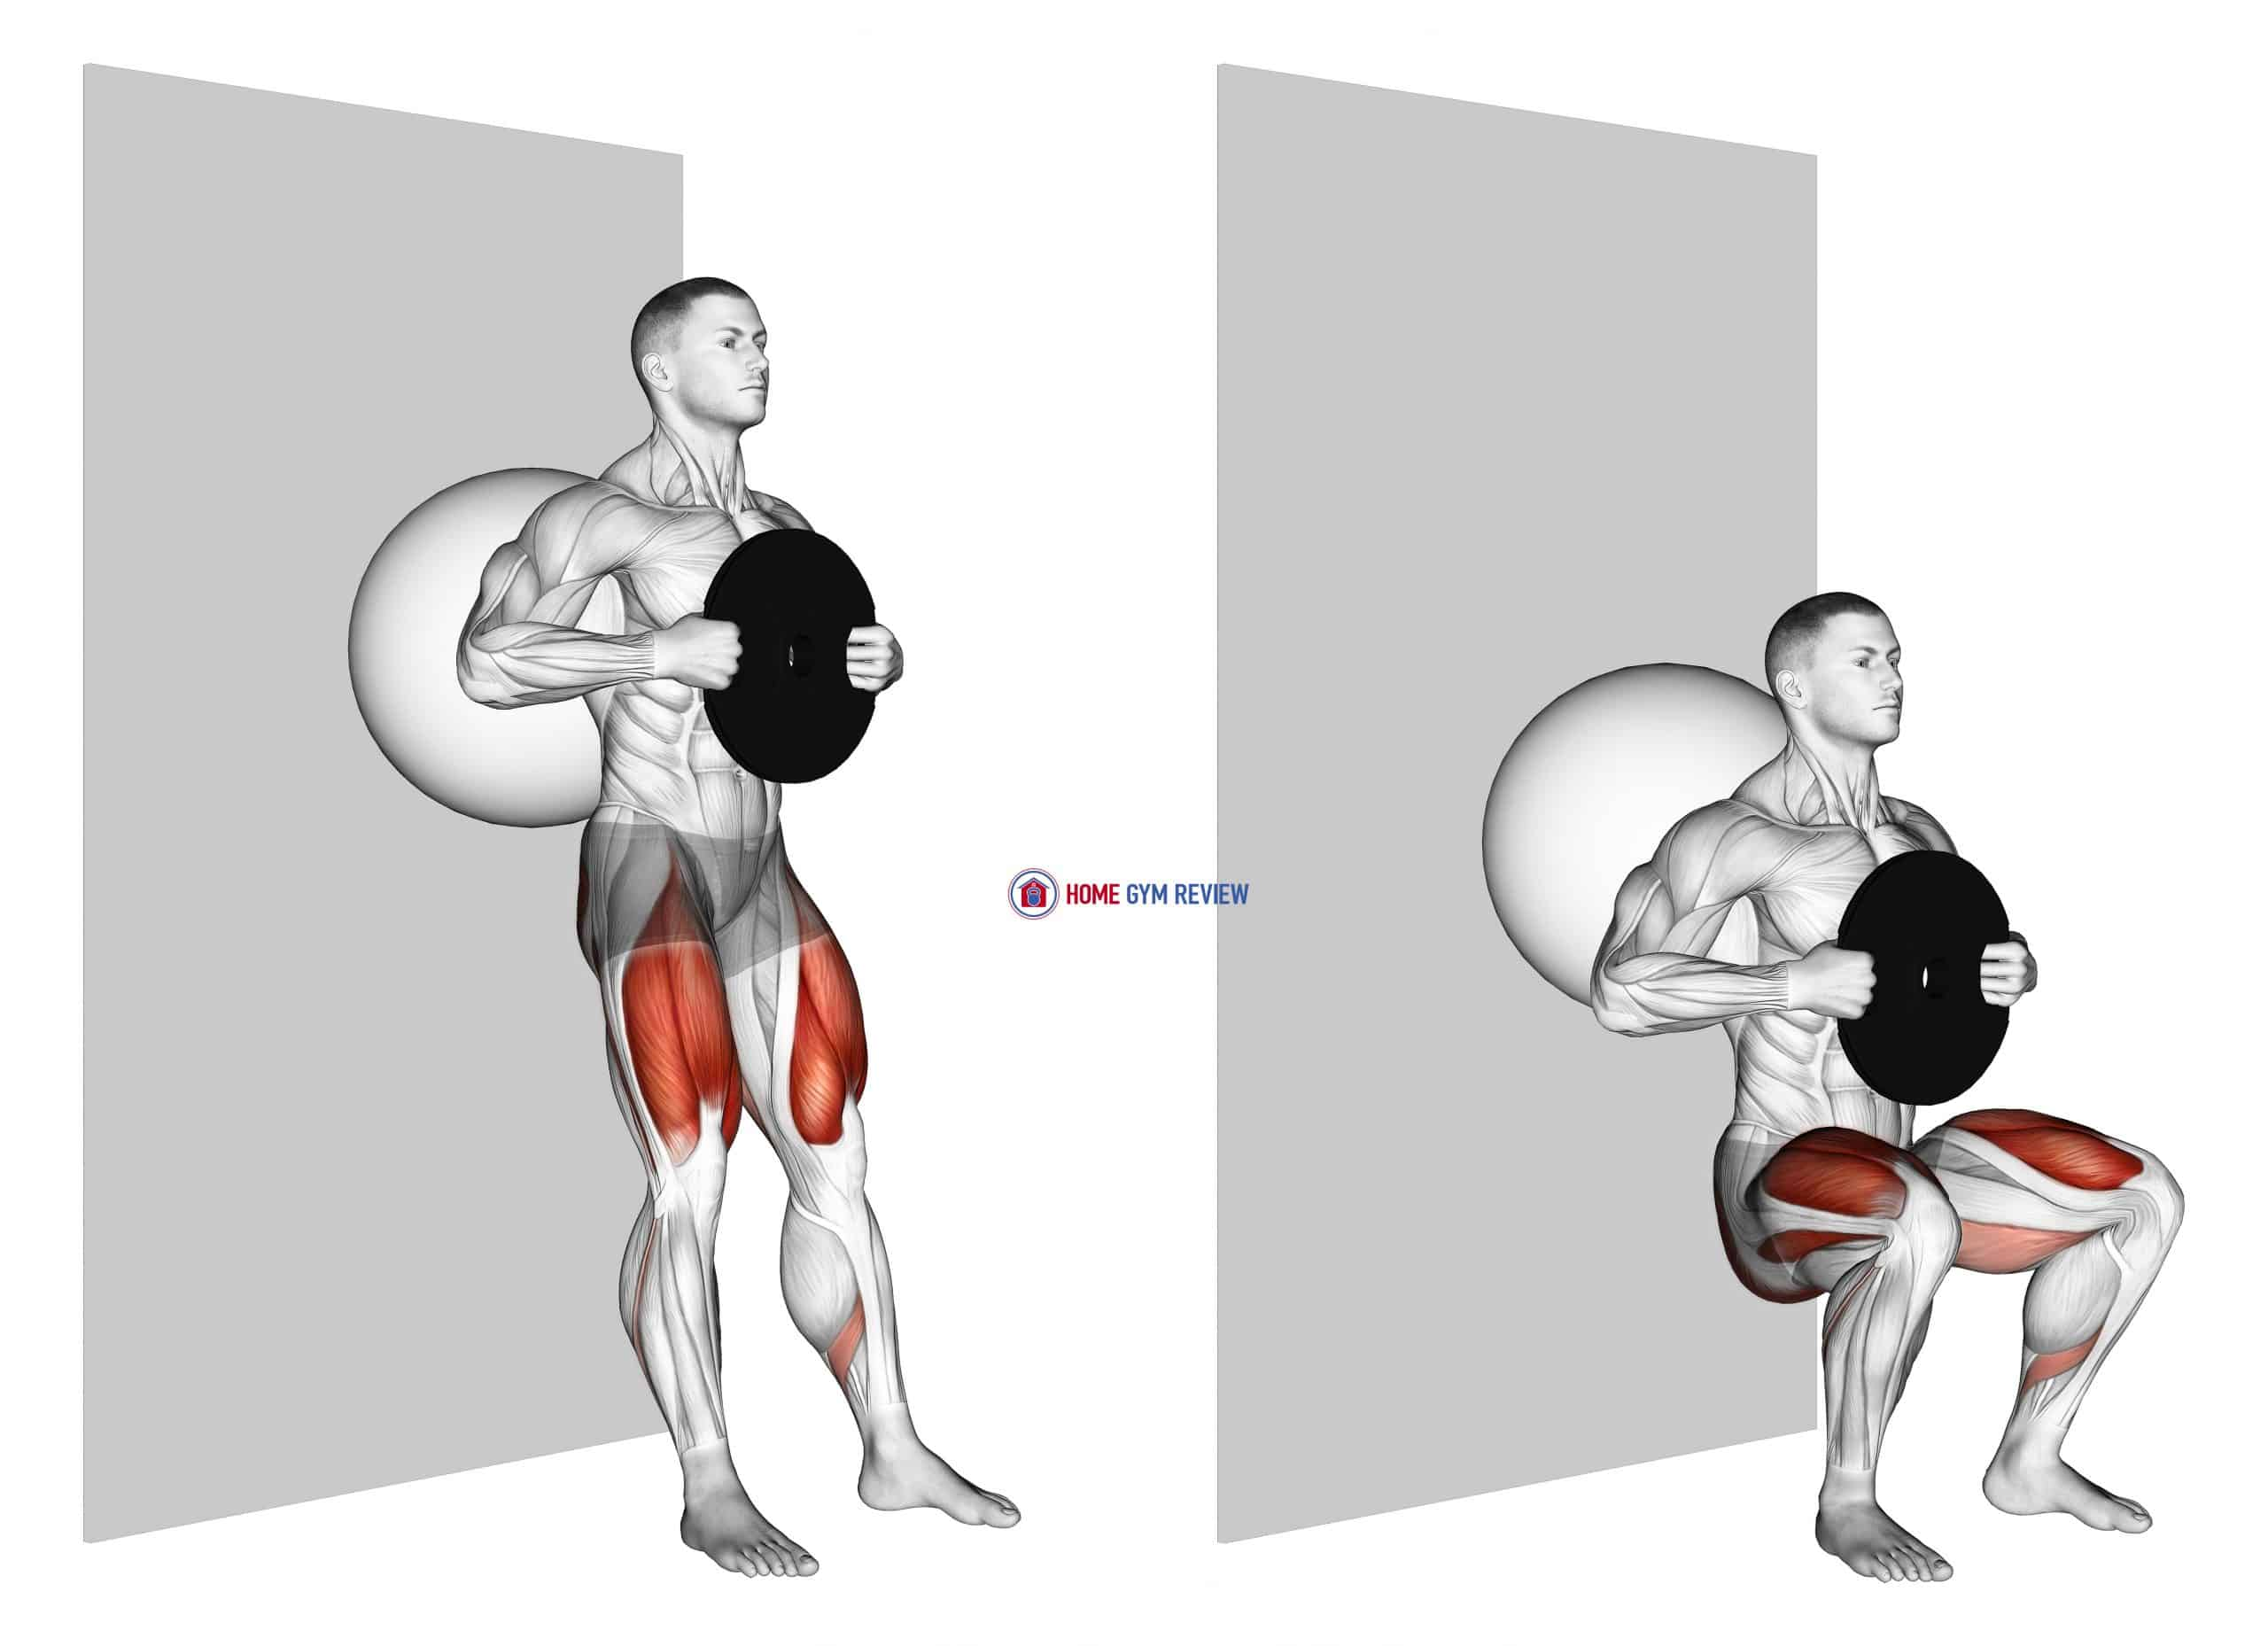 Weighted Exercise Ball Wall Squat